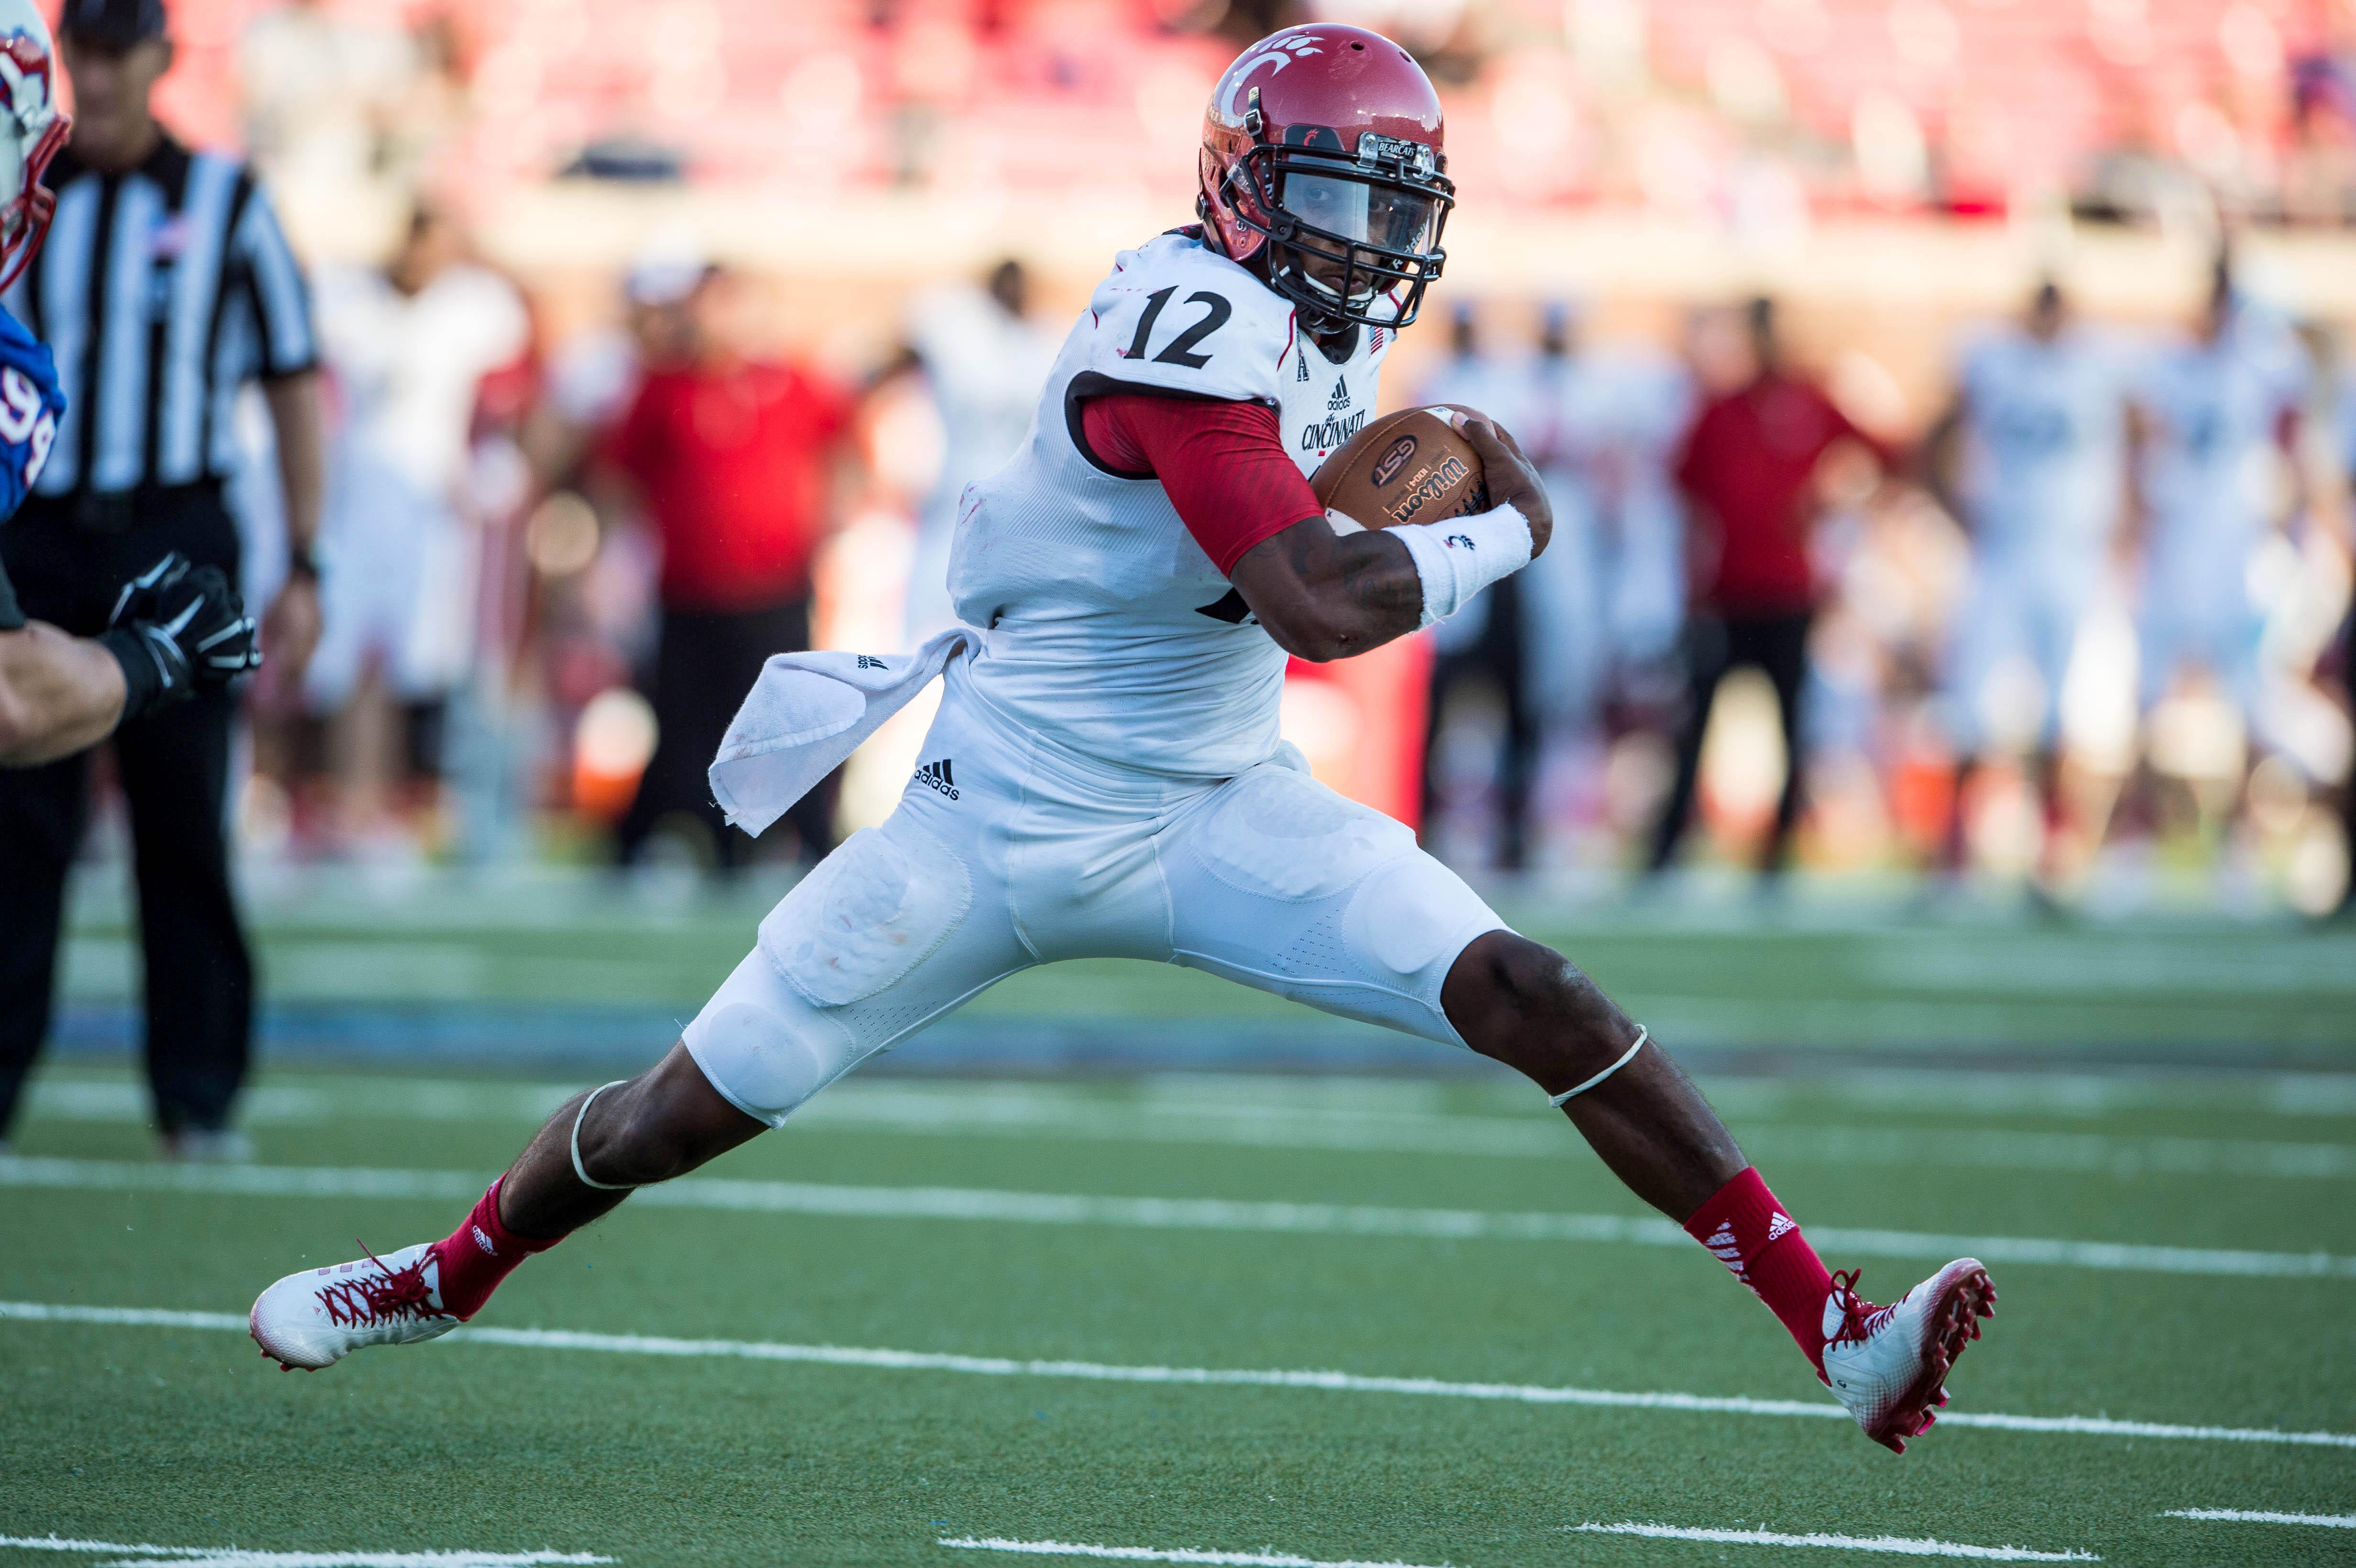 Cincy QB Jarred Evans says racial taunts led to punch